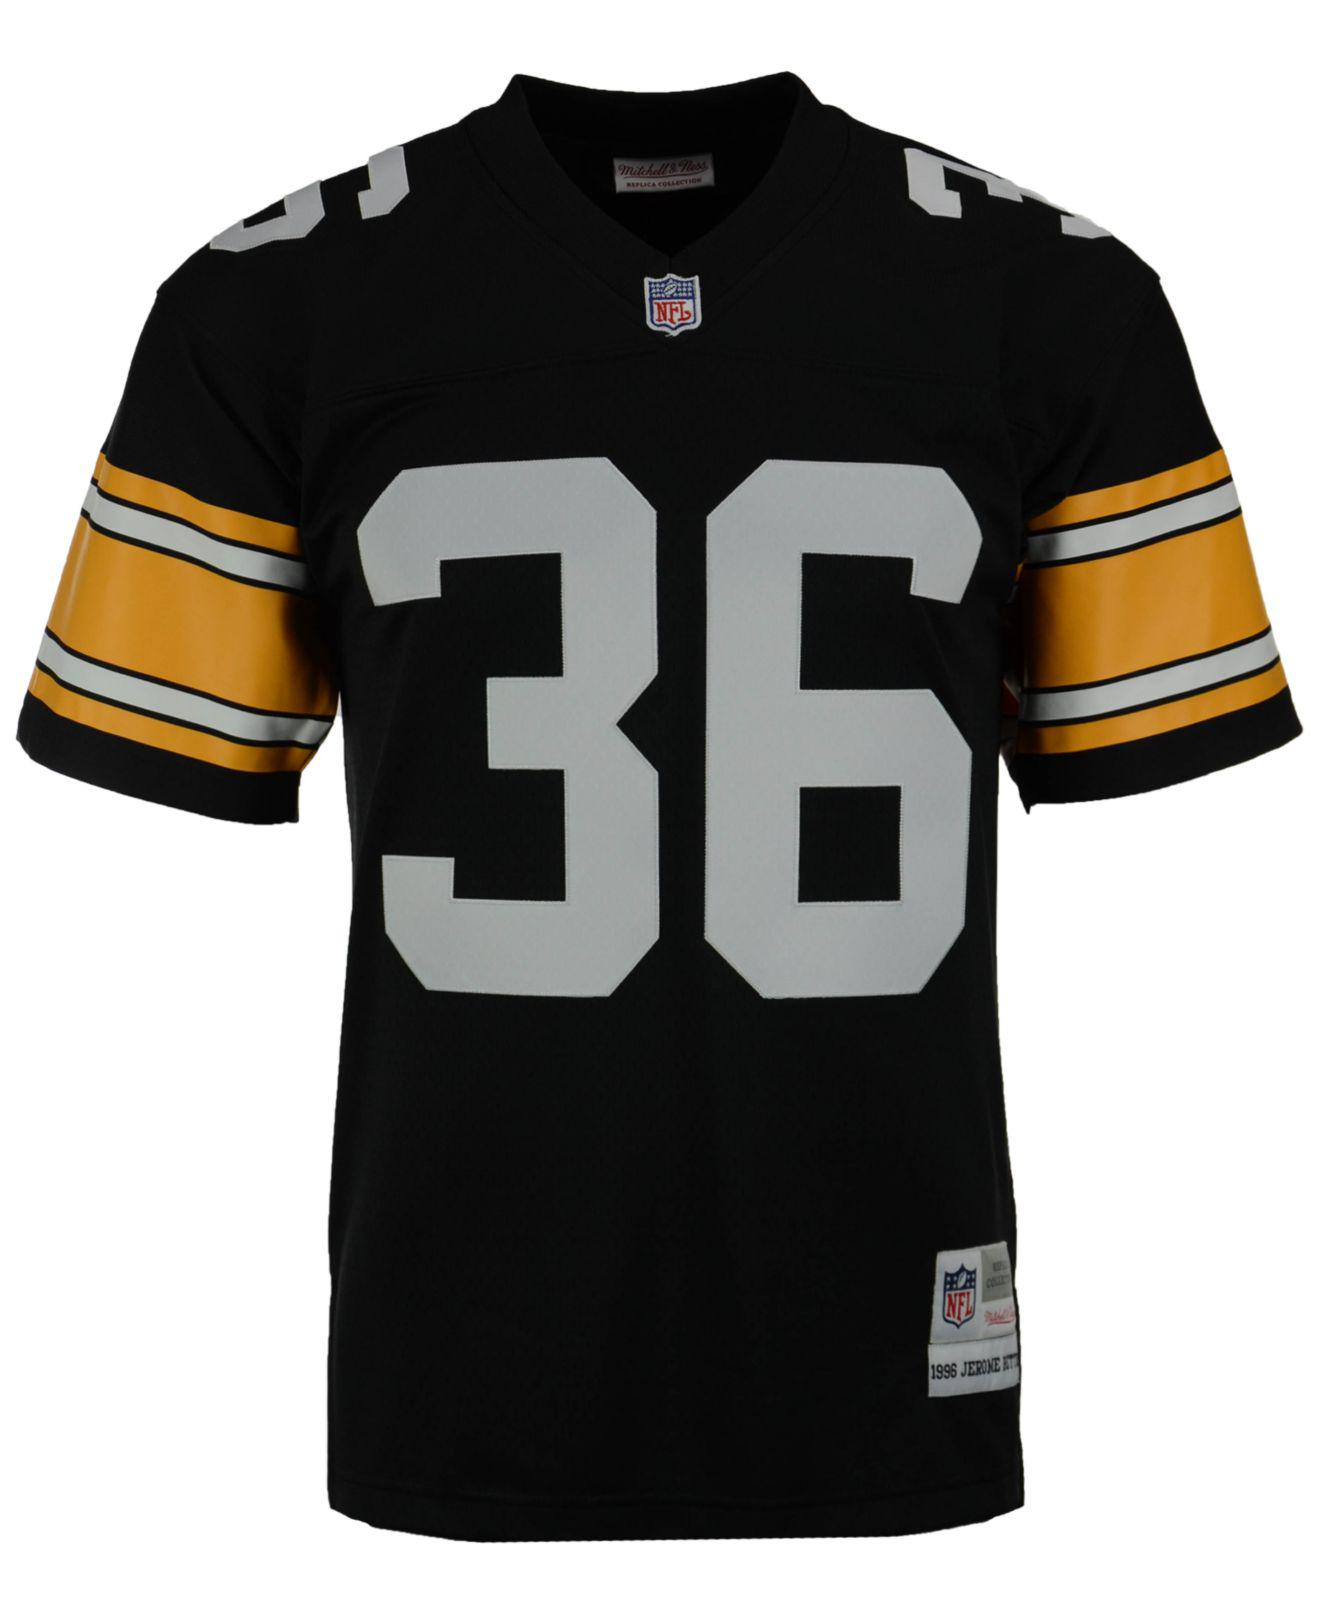 a72ed34c1a3 spain lyst mitchell ness mens jerome bettis pittsburgh steelers replica  throwback jersey in black for men